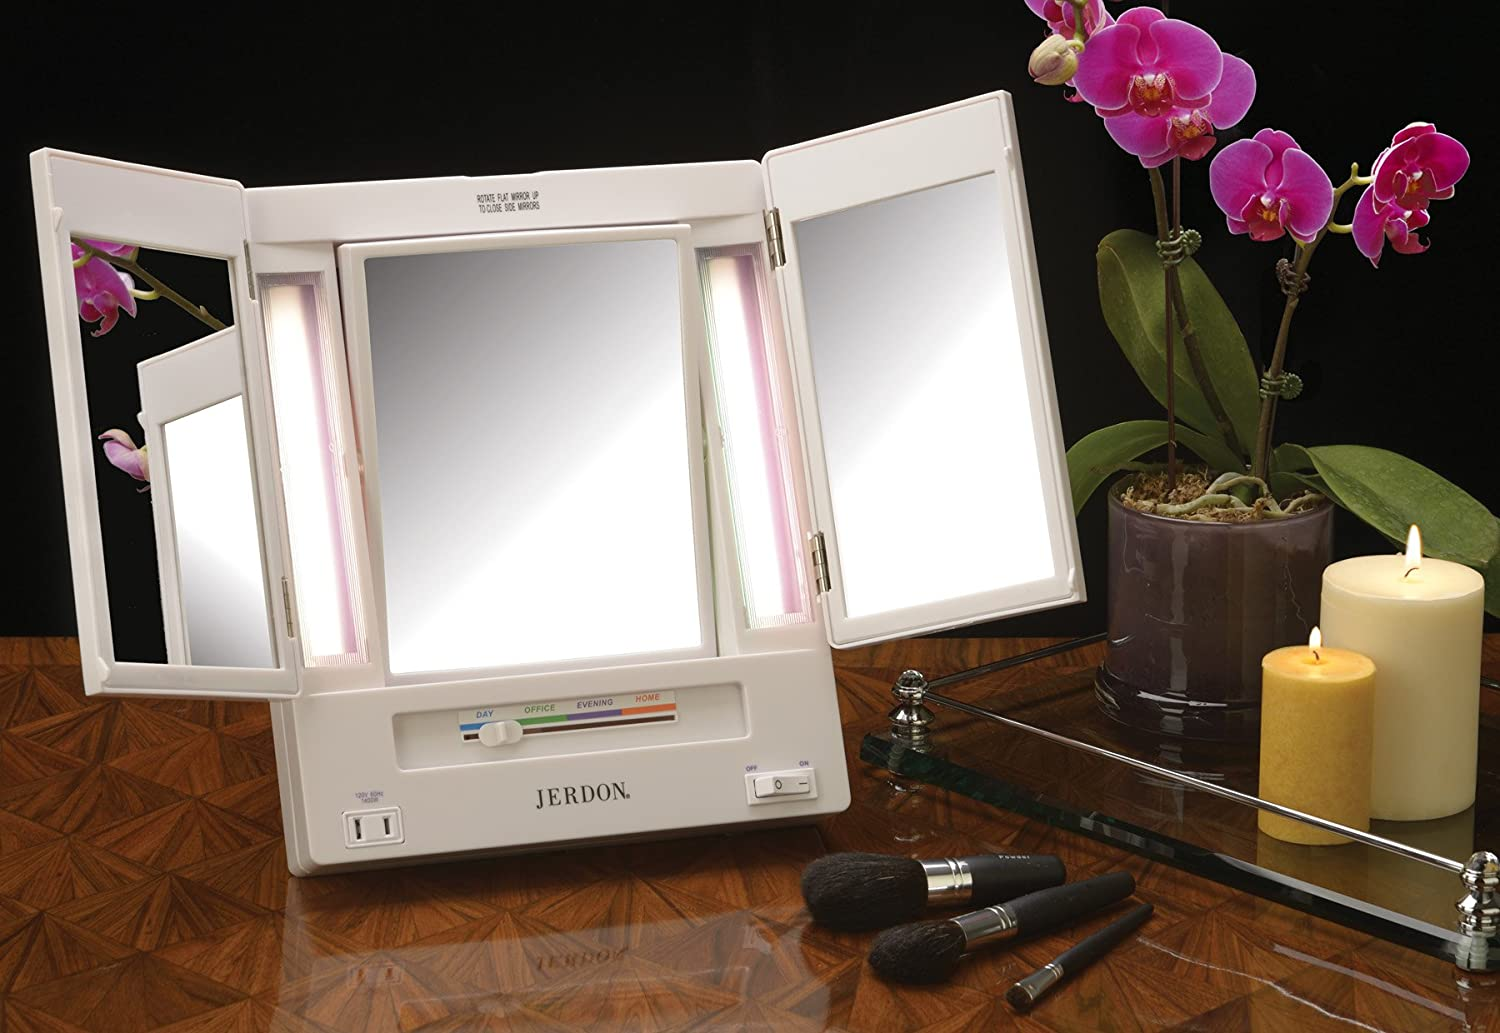 large vanity mirror with lights. Amazon com  Jerdon Tri Fold Two Sided Lighted Makeup Mirror with 5x Magnification White Finish Beauty